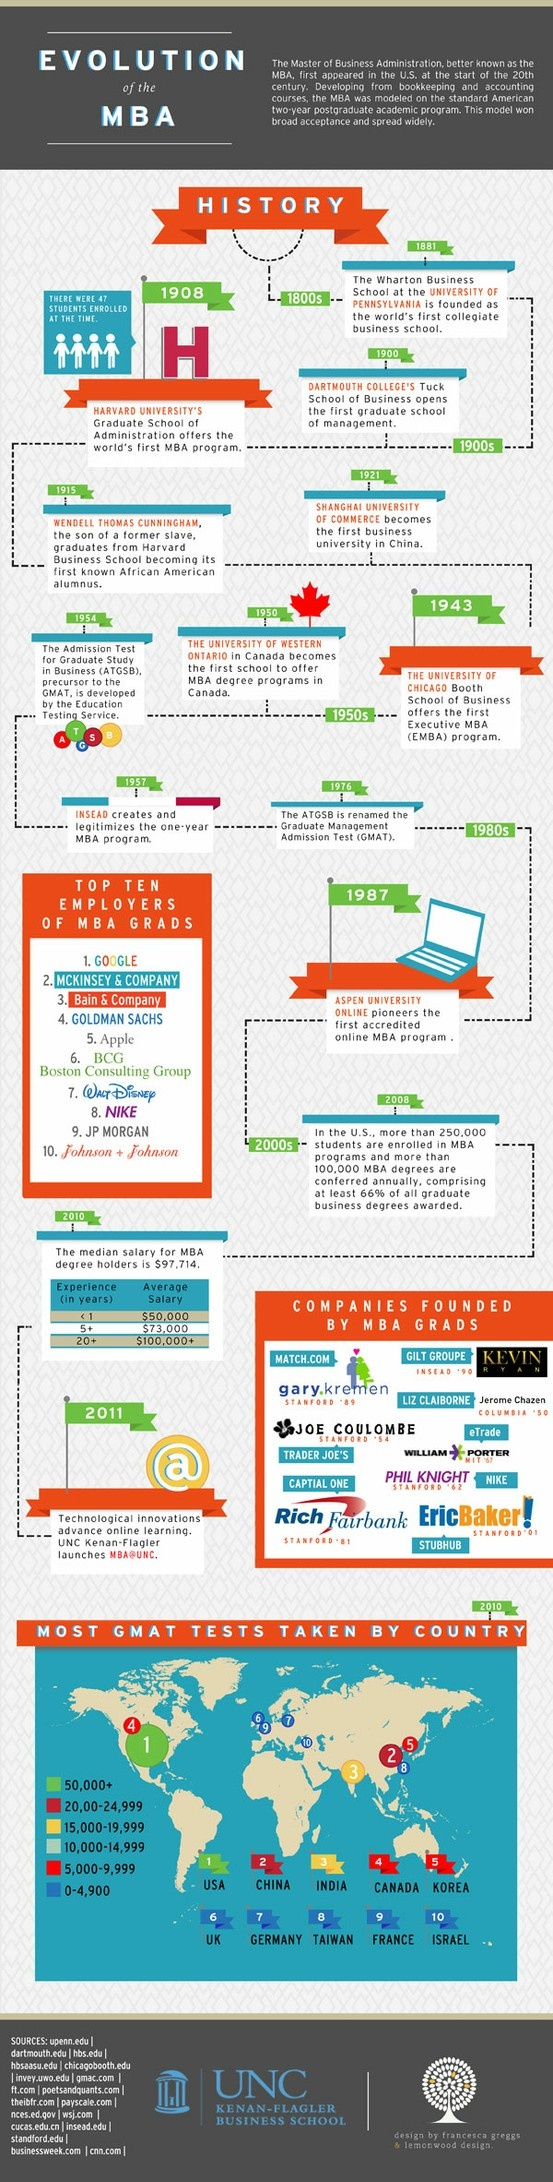 Exceptional The Evolution Of The MBA (INFOGRAPHIC). Even Though Written By Another  School, Its Facts About Future Employment Support Any MBA Program,  Including McCombs